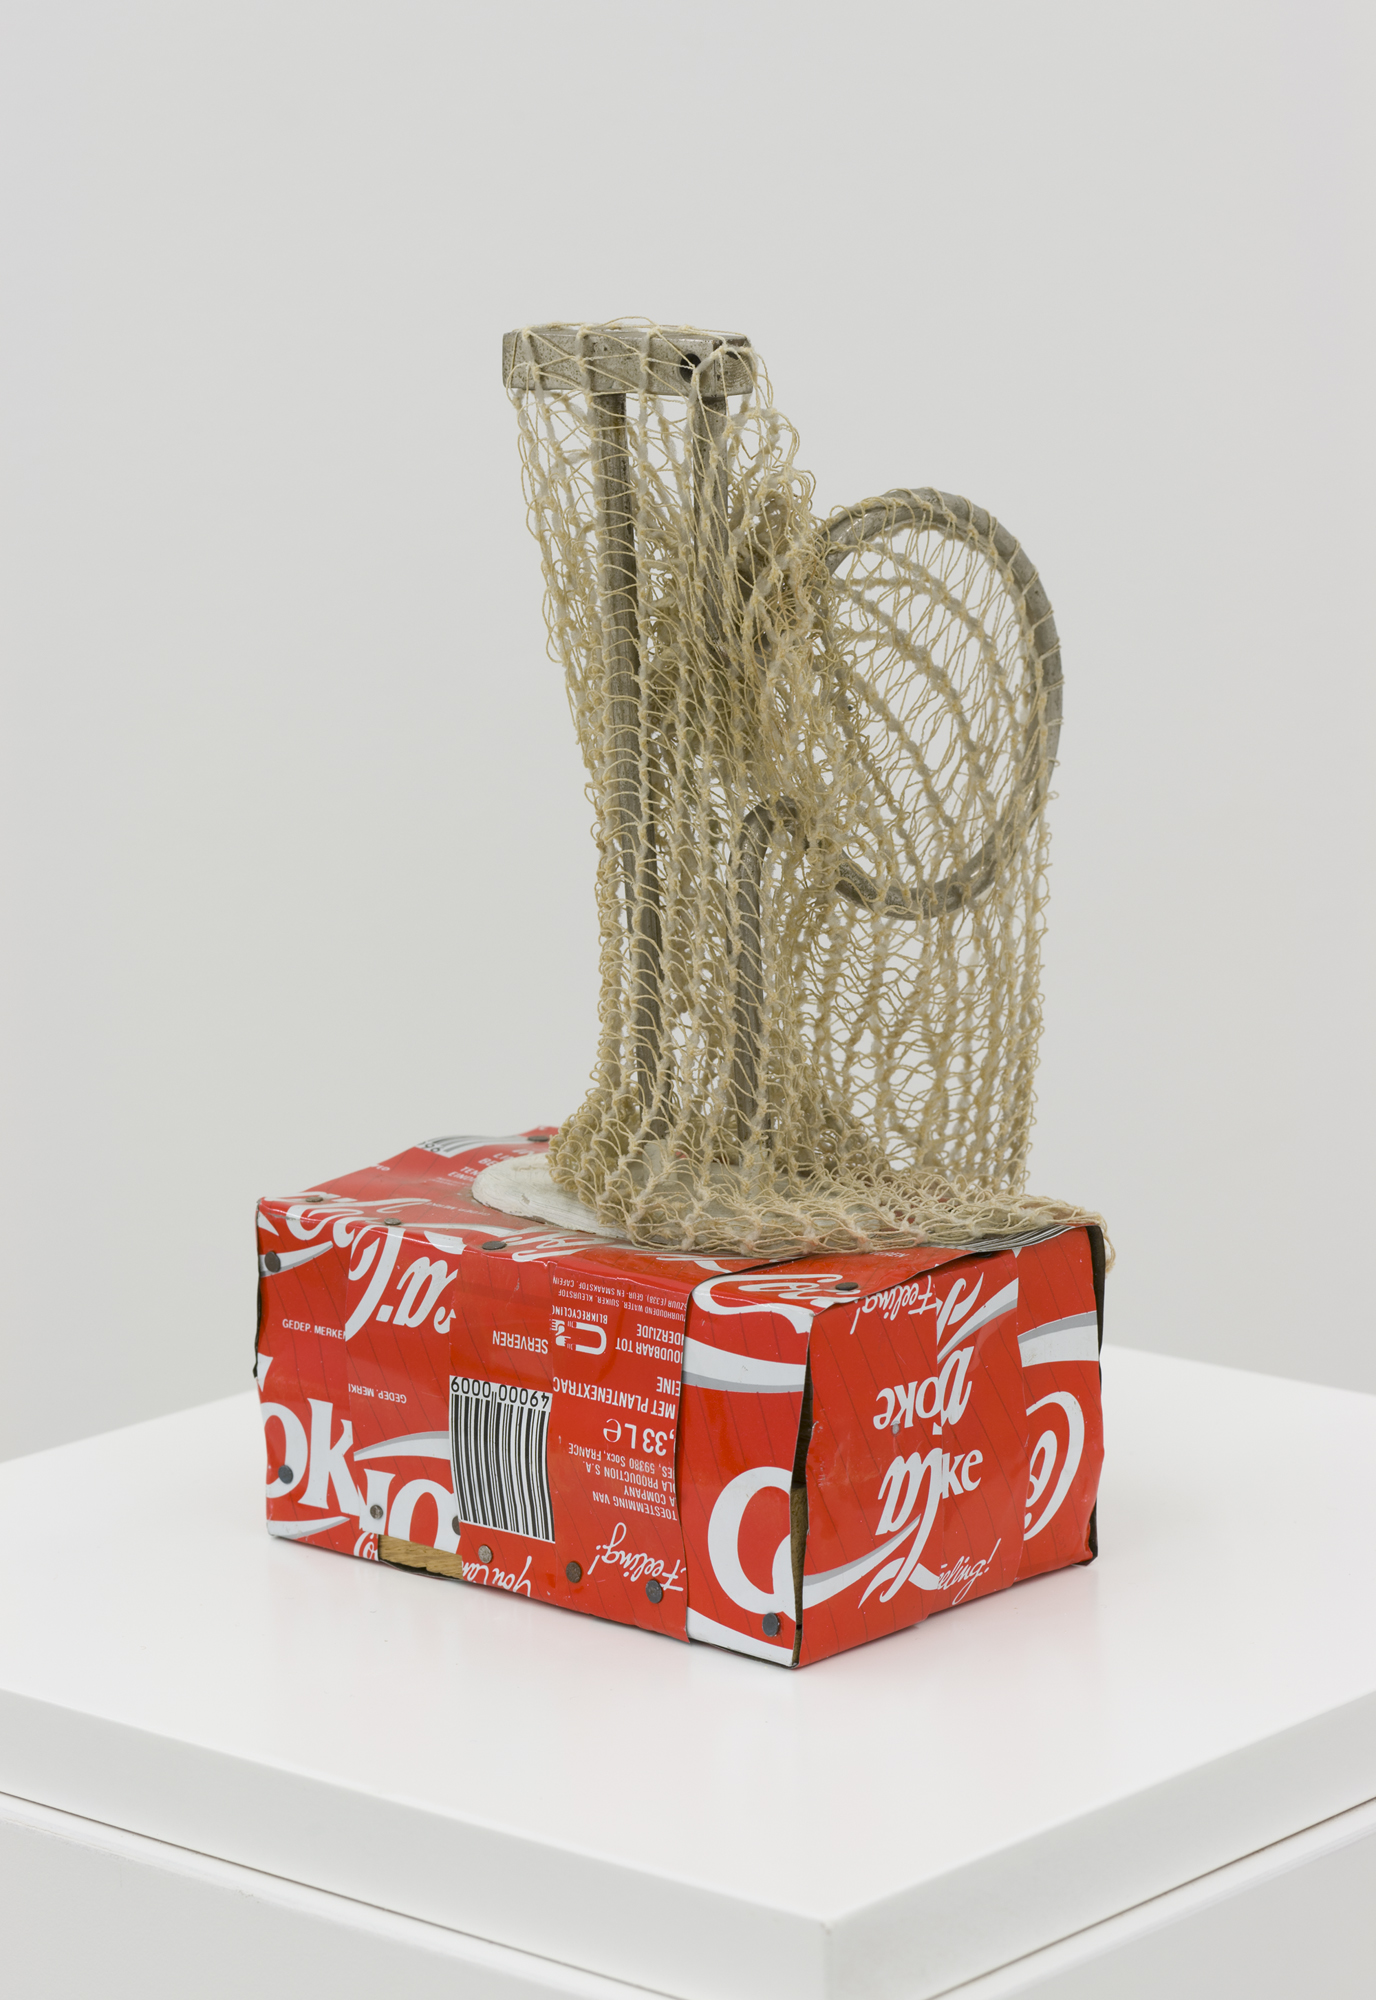 Untitled (Object 3), wood, glue, metal, bandage, 22 x 13 x 13.5 cm, 1985